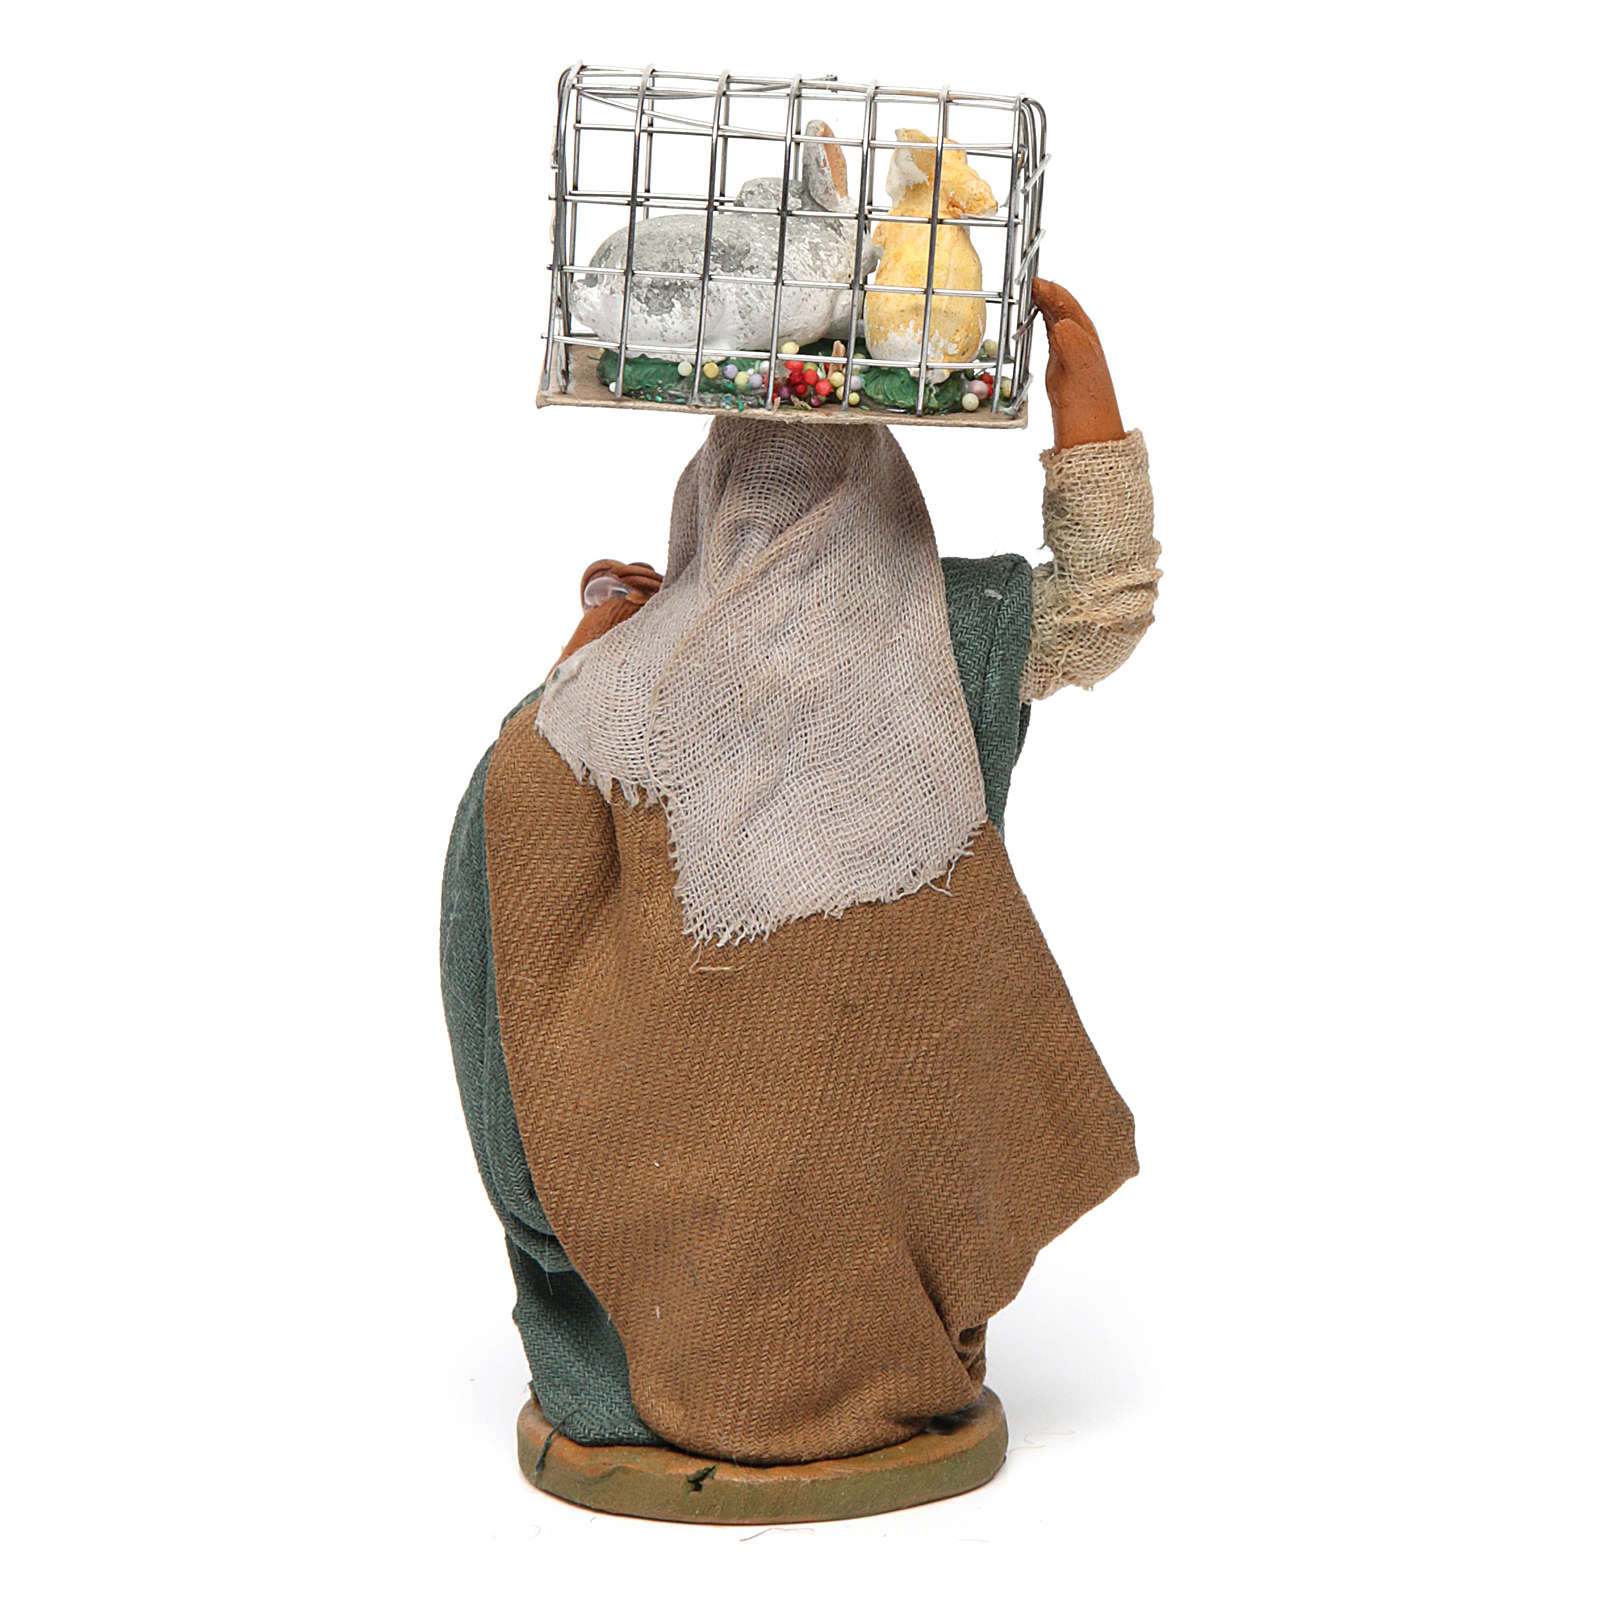 Woman with cage and basket, Neapolitan nativity figurine 10cm 4